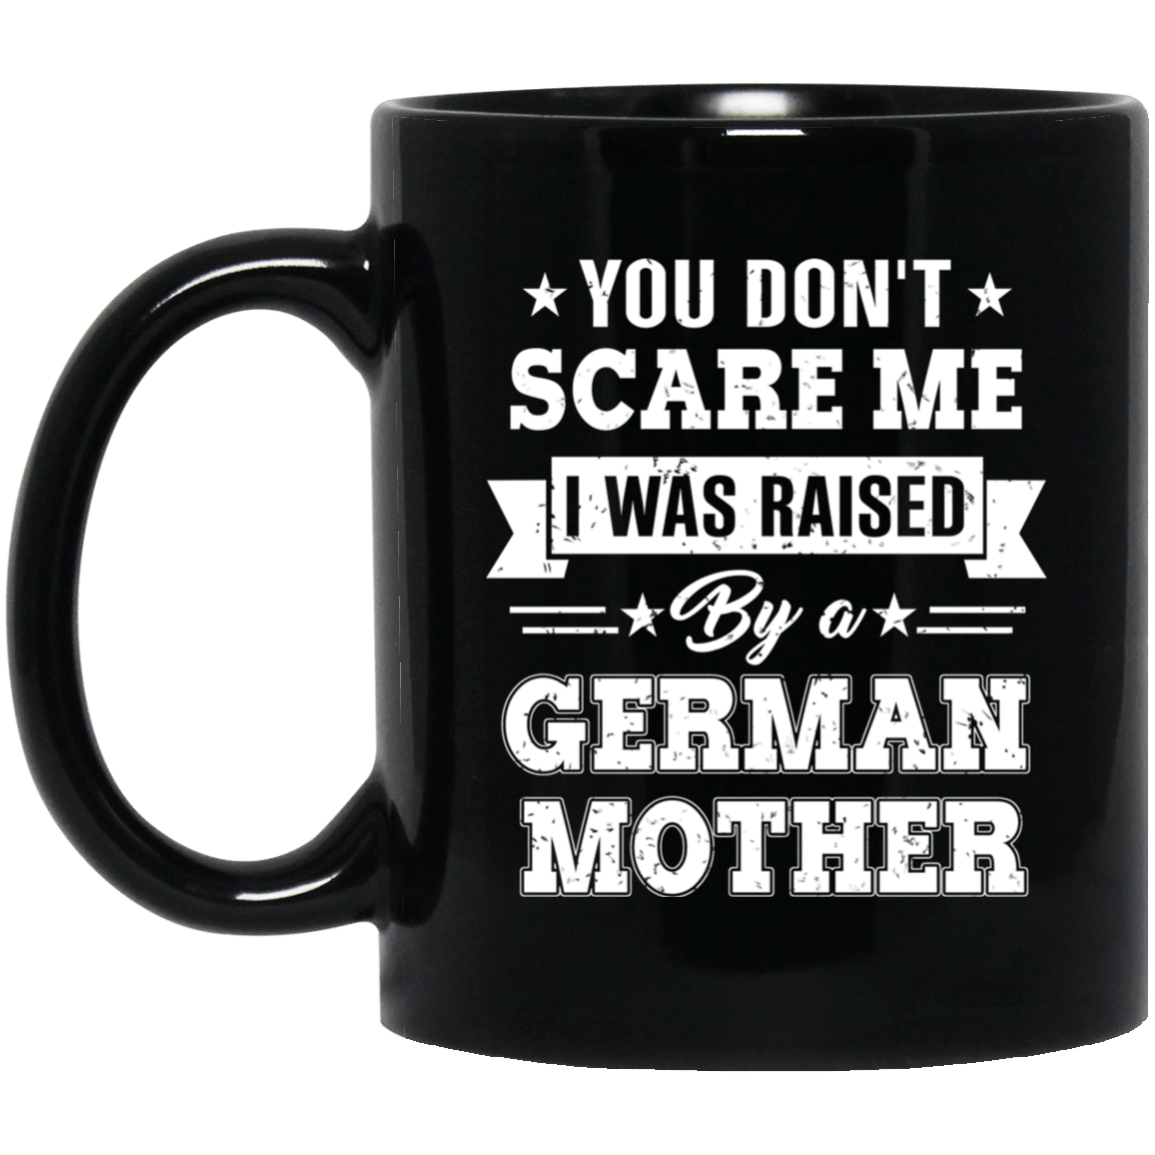 You Don't Scare Me I Was Raised By A German Mother Mug 1065-10181-72519623-49307 - Tee Ript